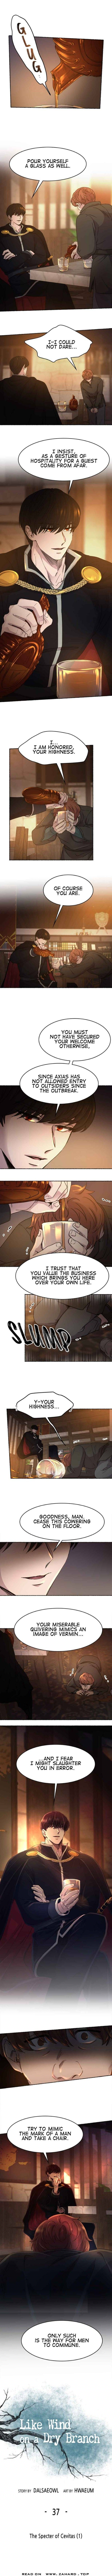 Like Wind on a Dry Branch - chapter 37 - #2